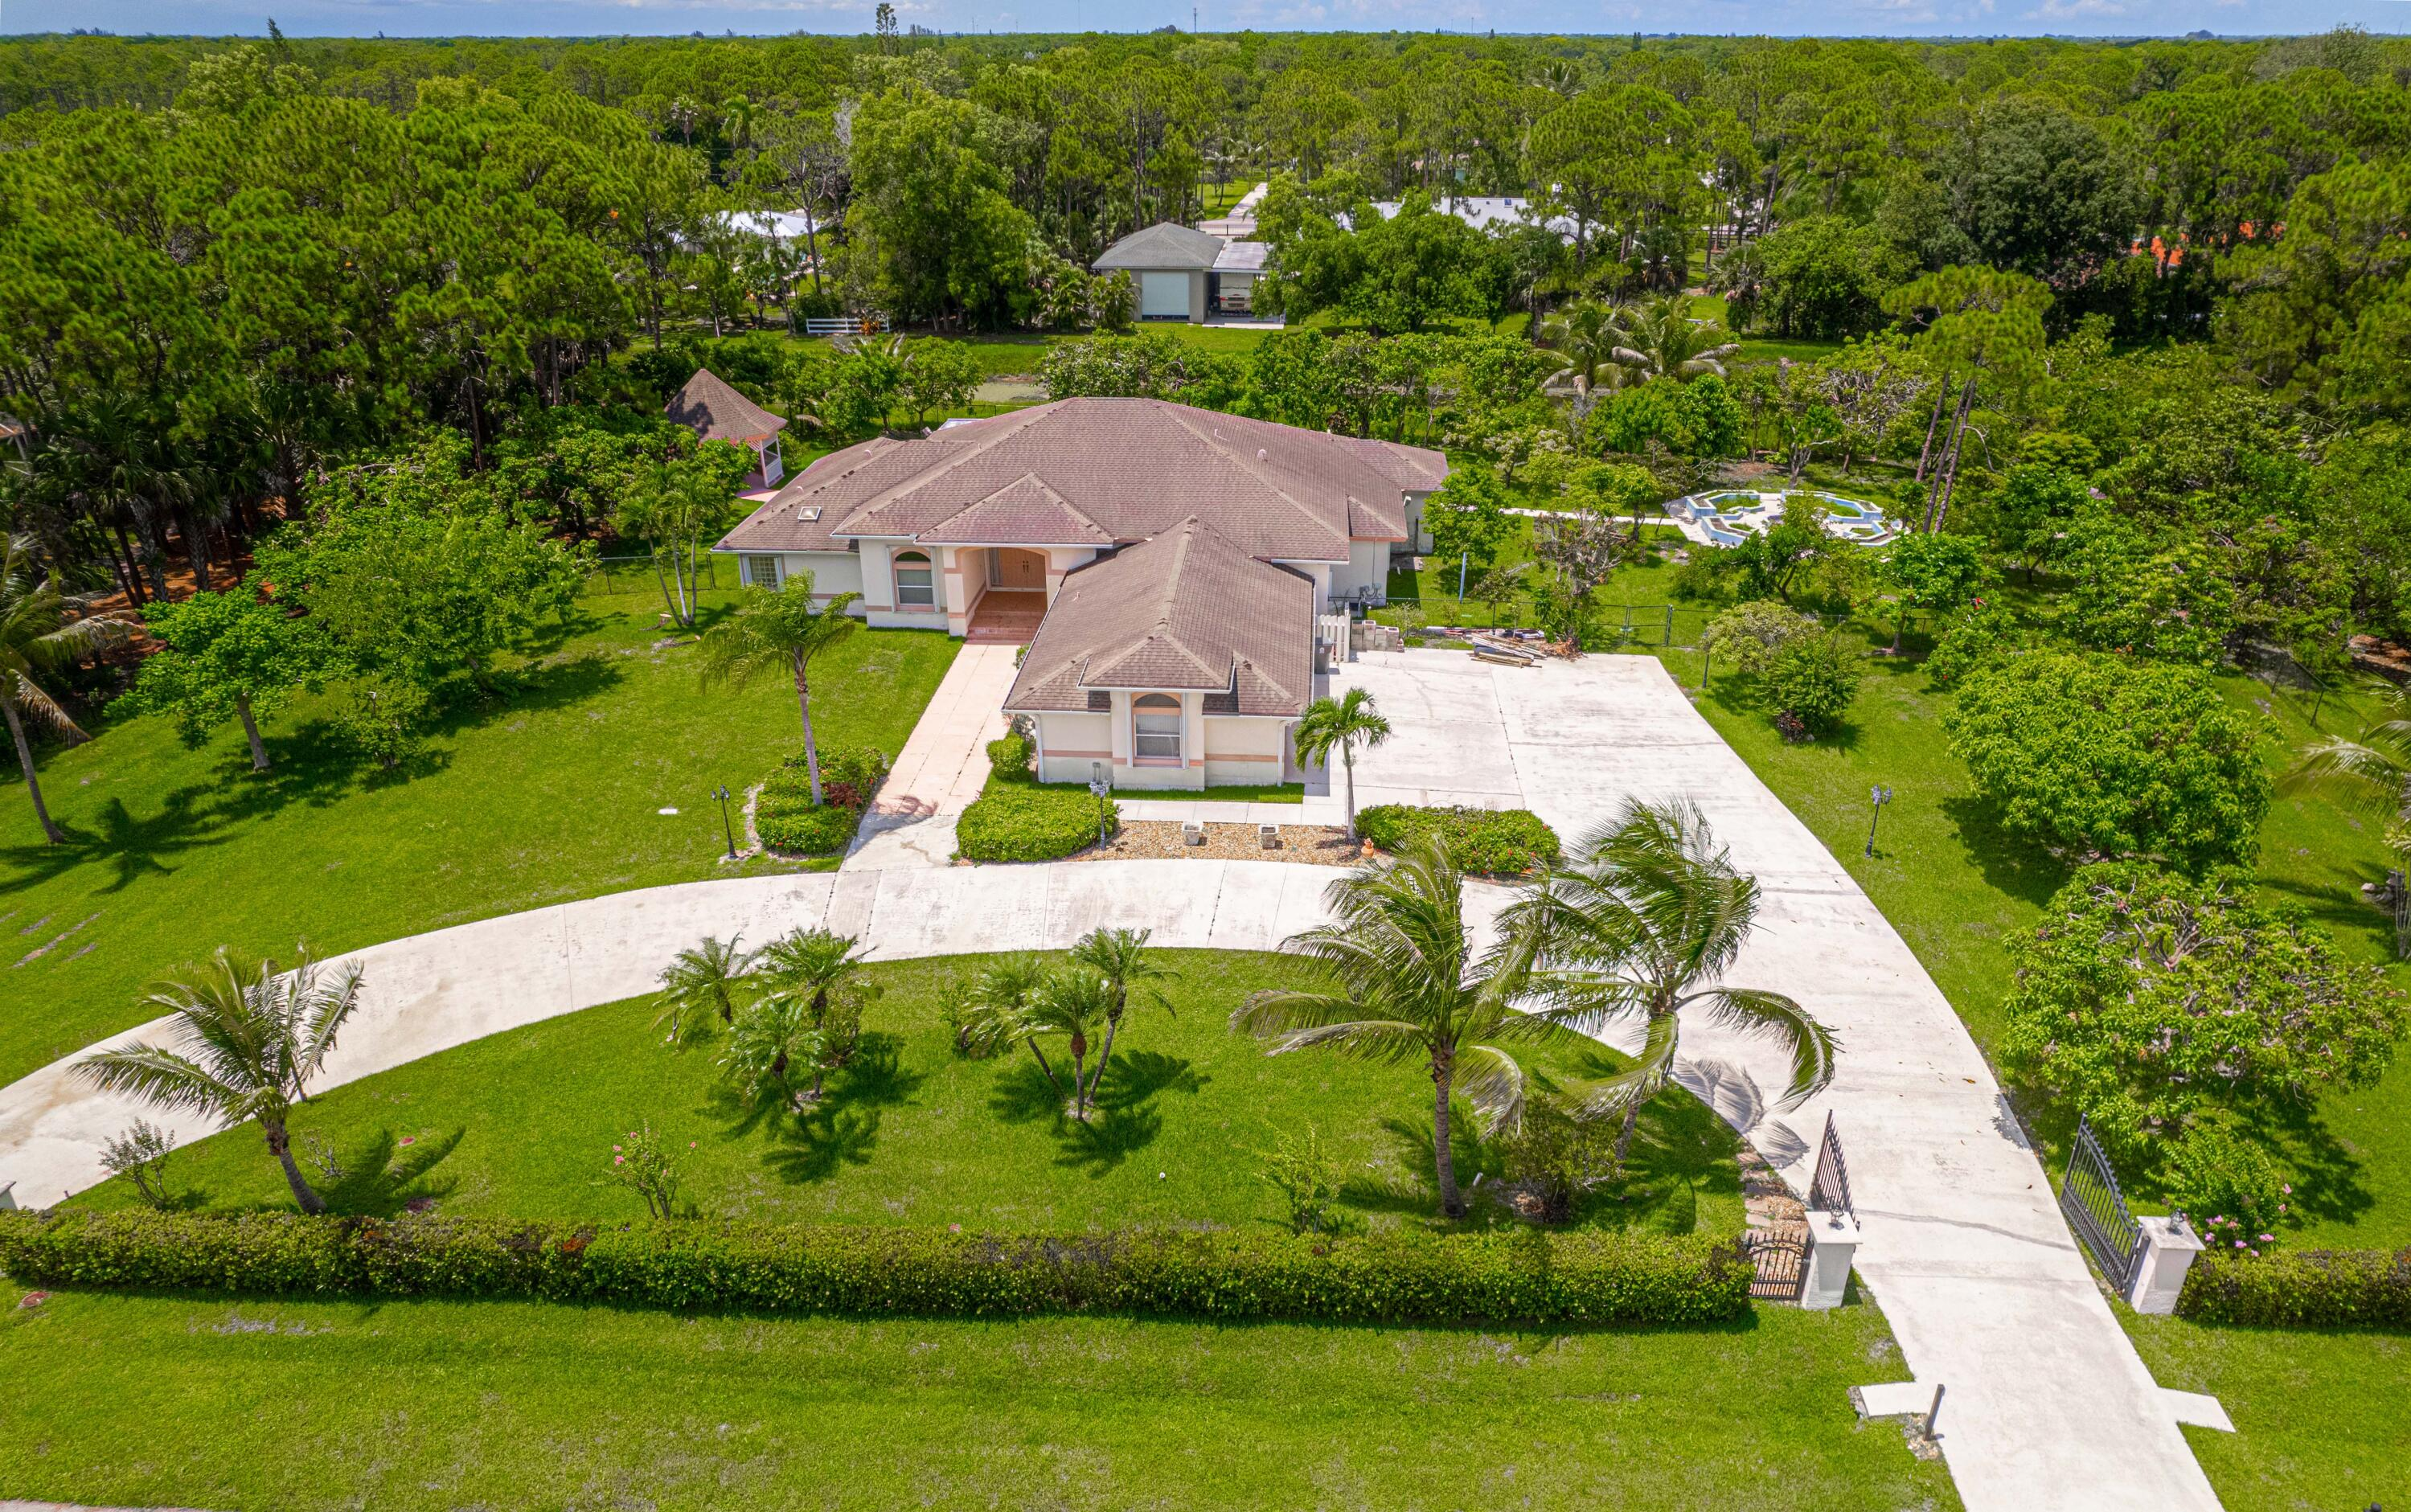 6843  145th Place  For Sale 10740714, FL